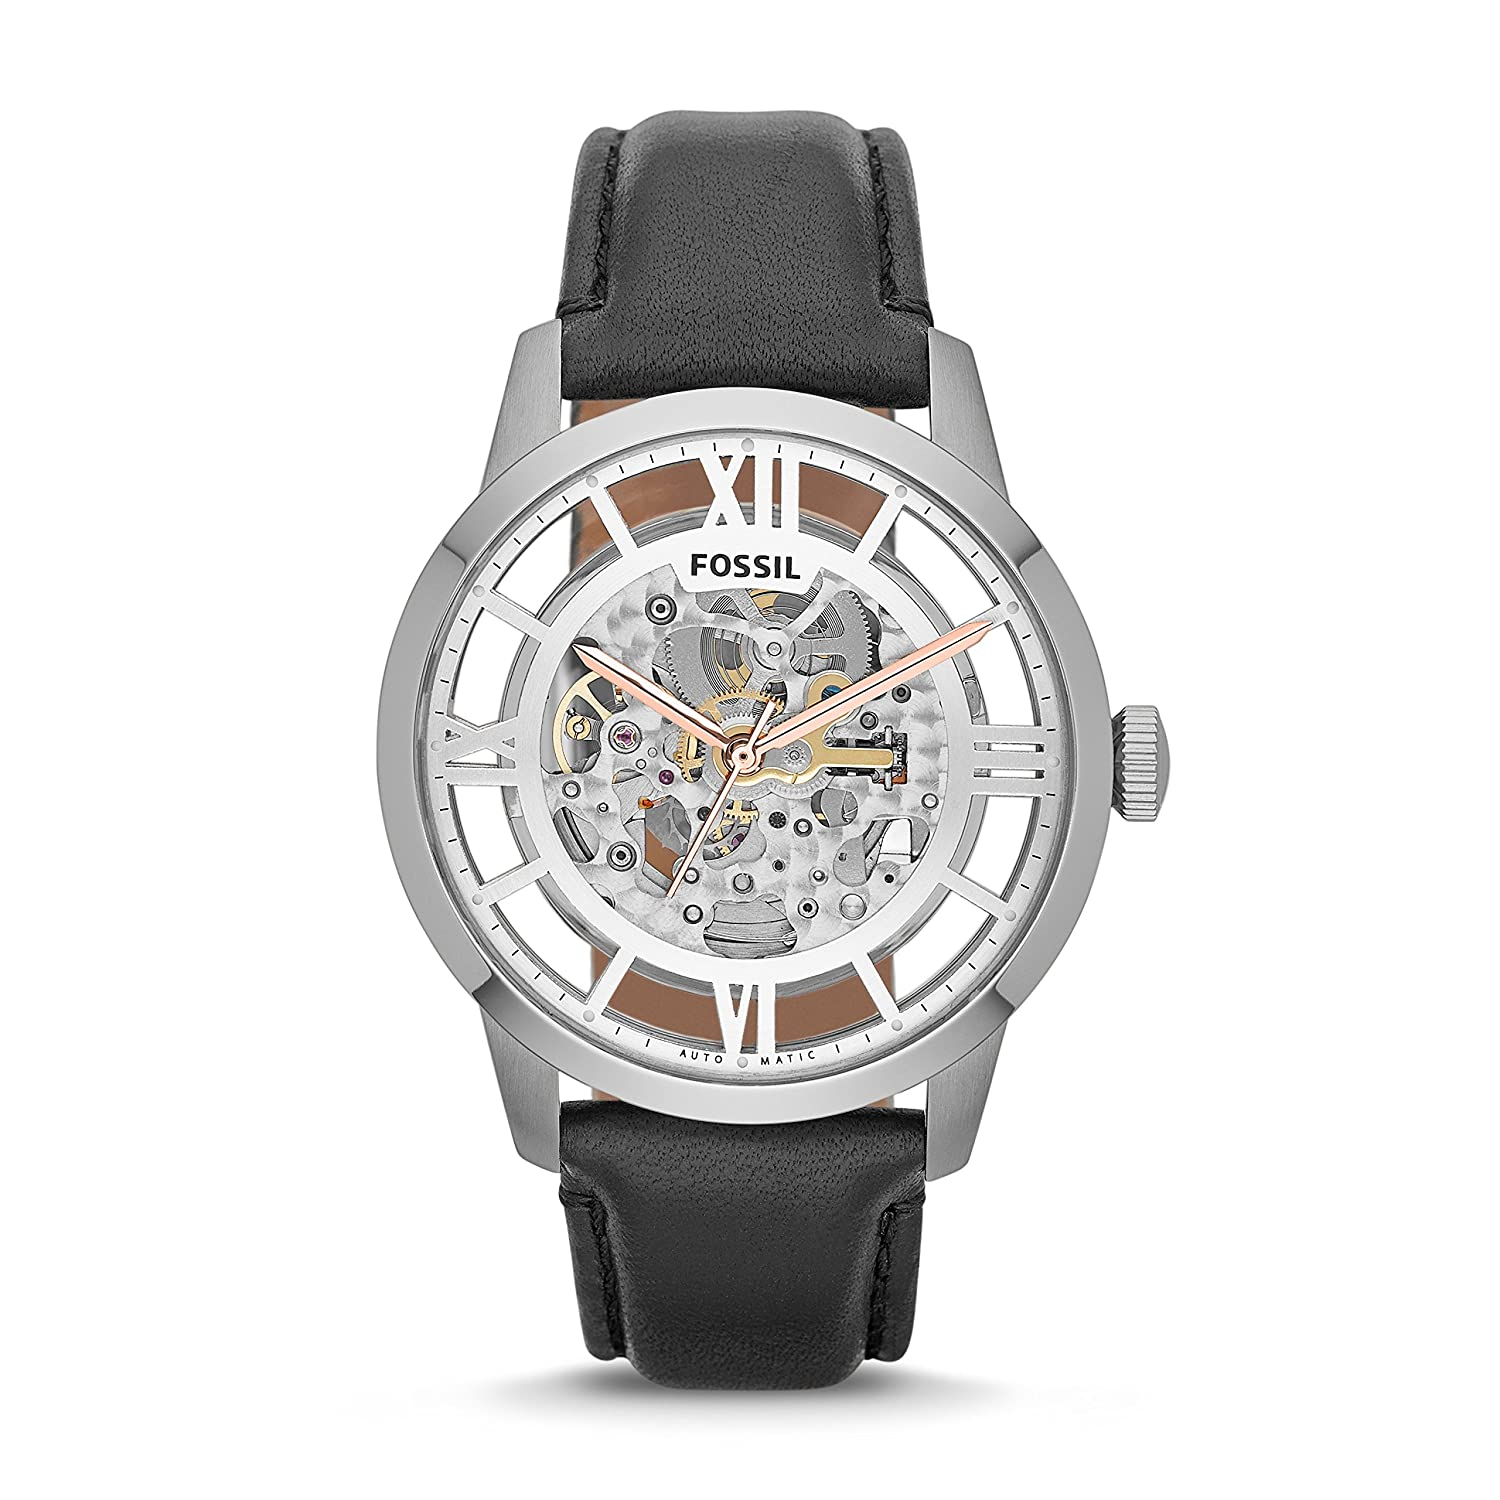 Fossil Men's Townsman Watch, Automatic Watch, Silver Watch, Leather Watch, Skeleton Watches